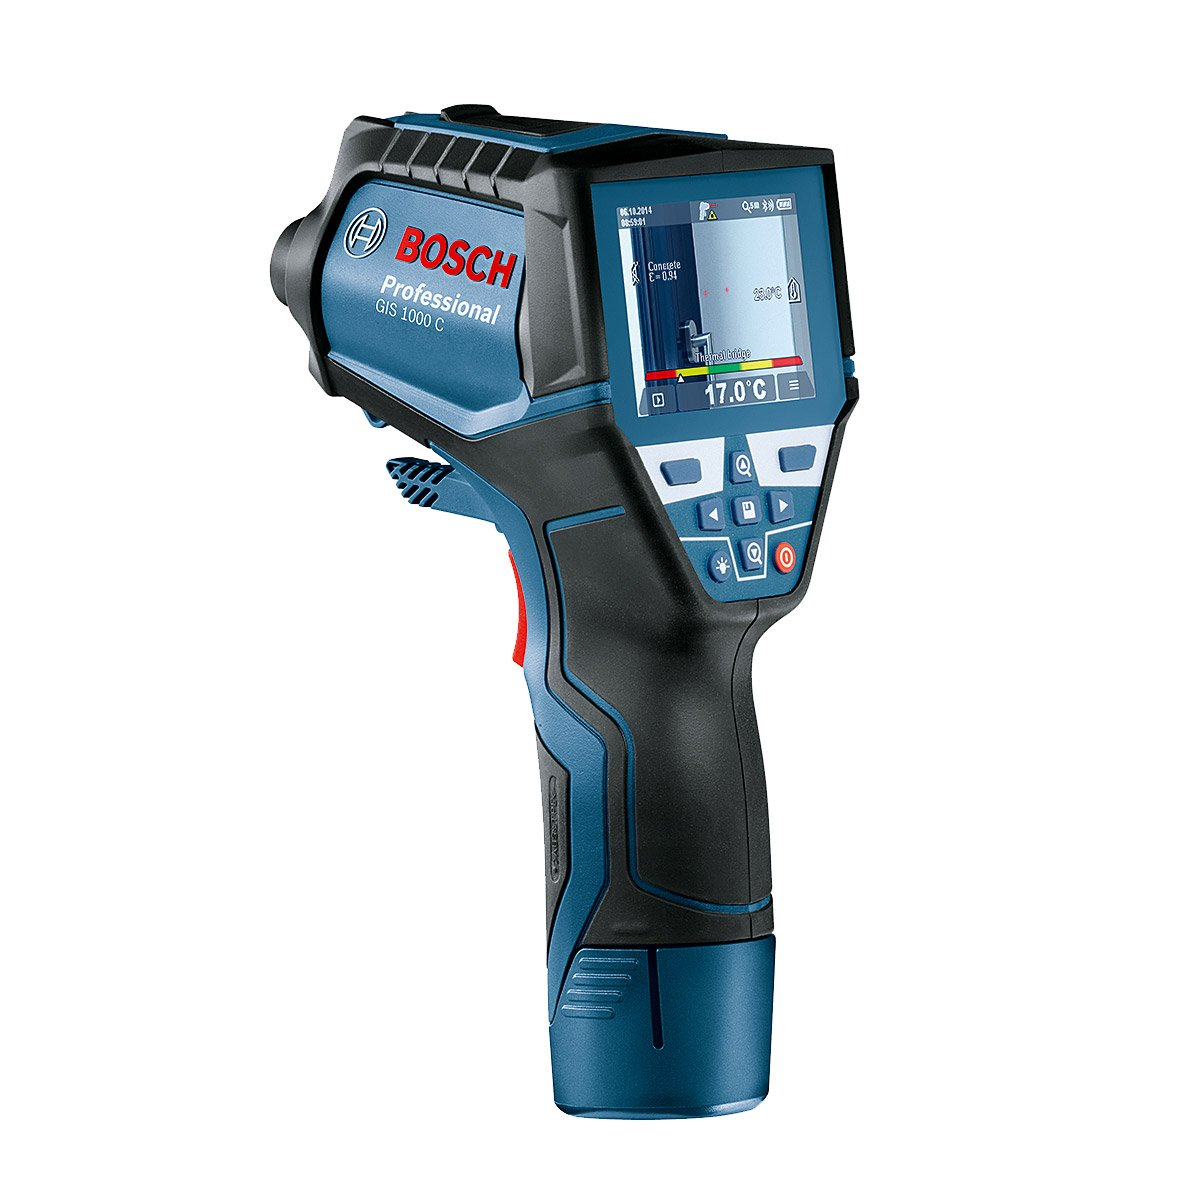 Bosch GIS 1000C Thermo Detector Infrared Scanner Thermometer Imager Hygrometer